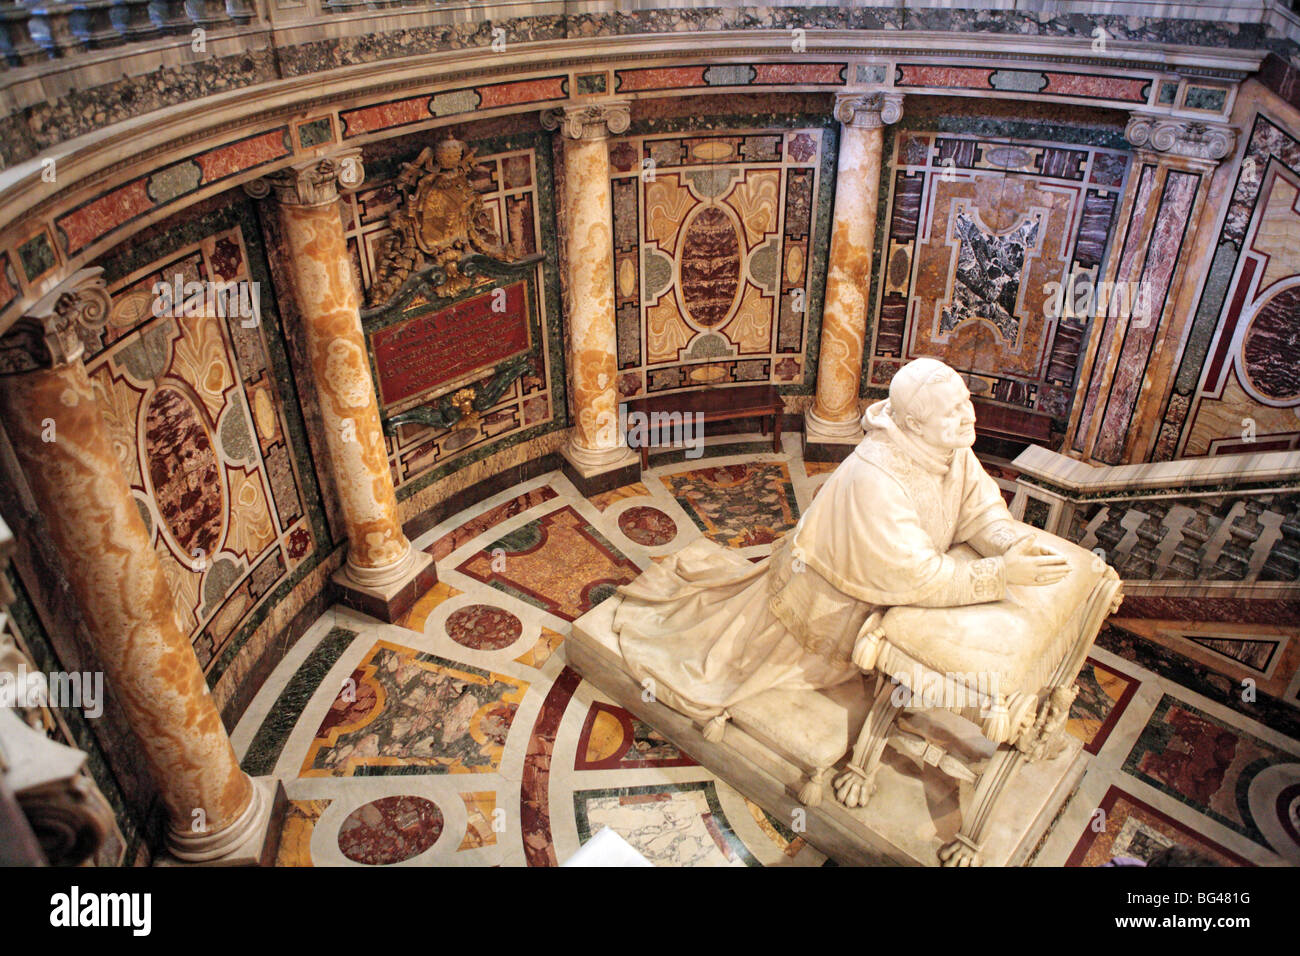 Church of Santa Maria Maggiore, Rome, Italy - Stock Image